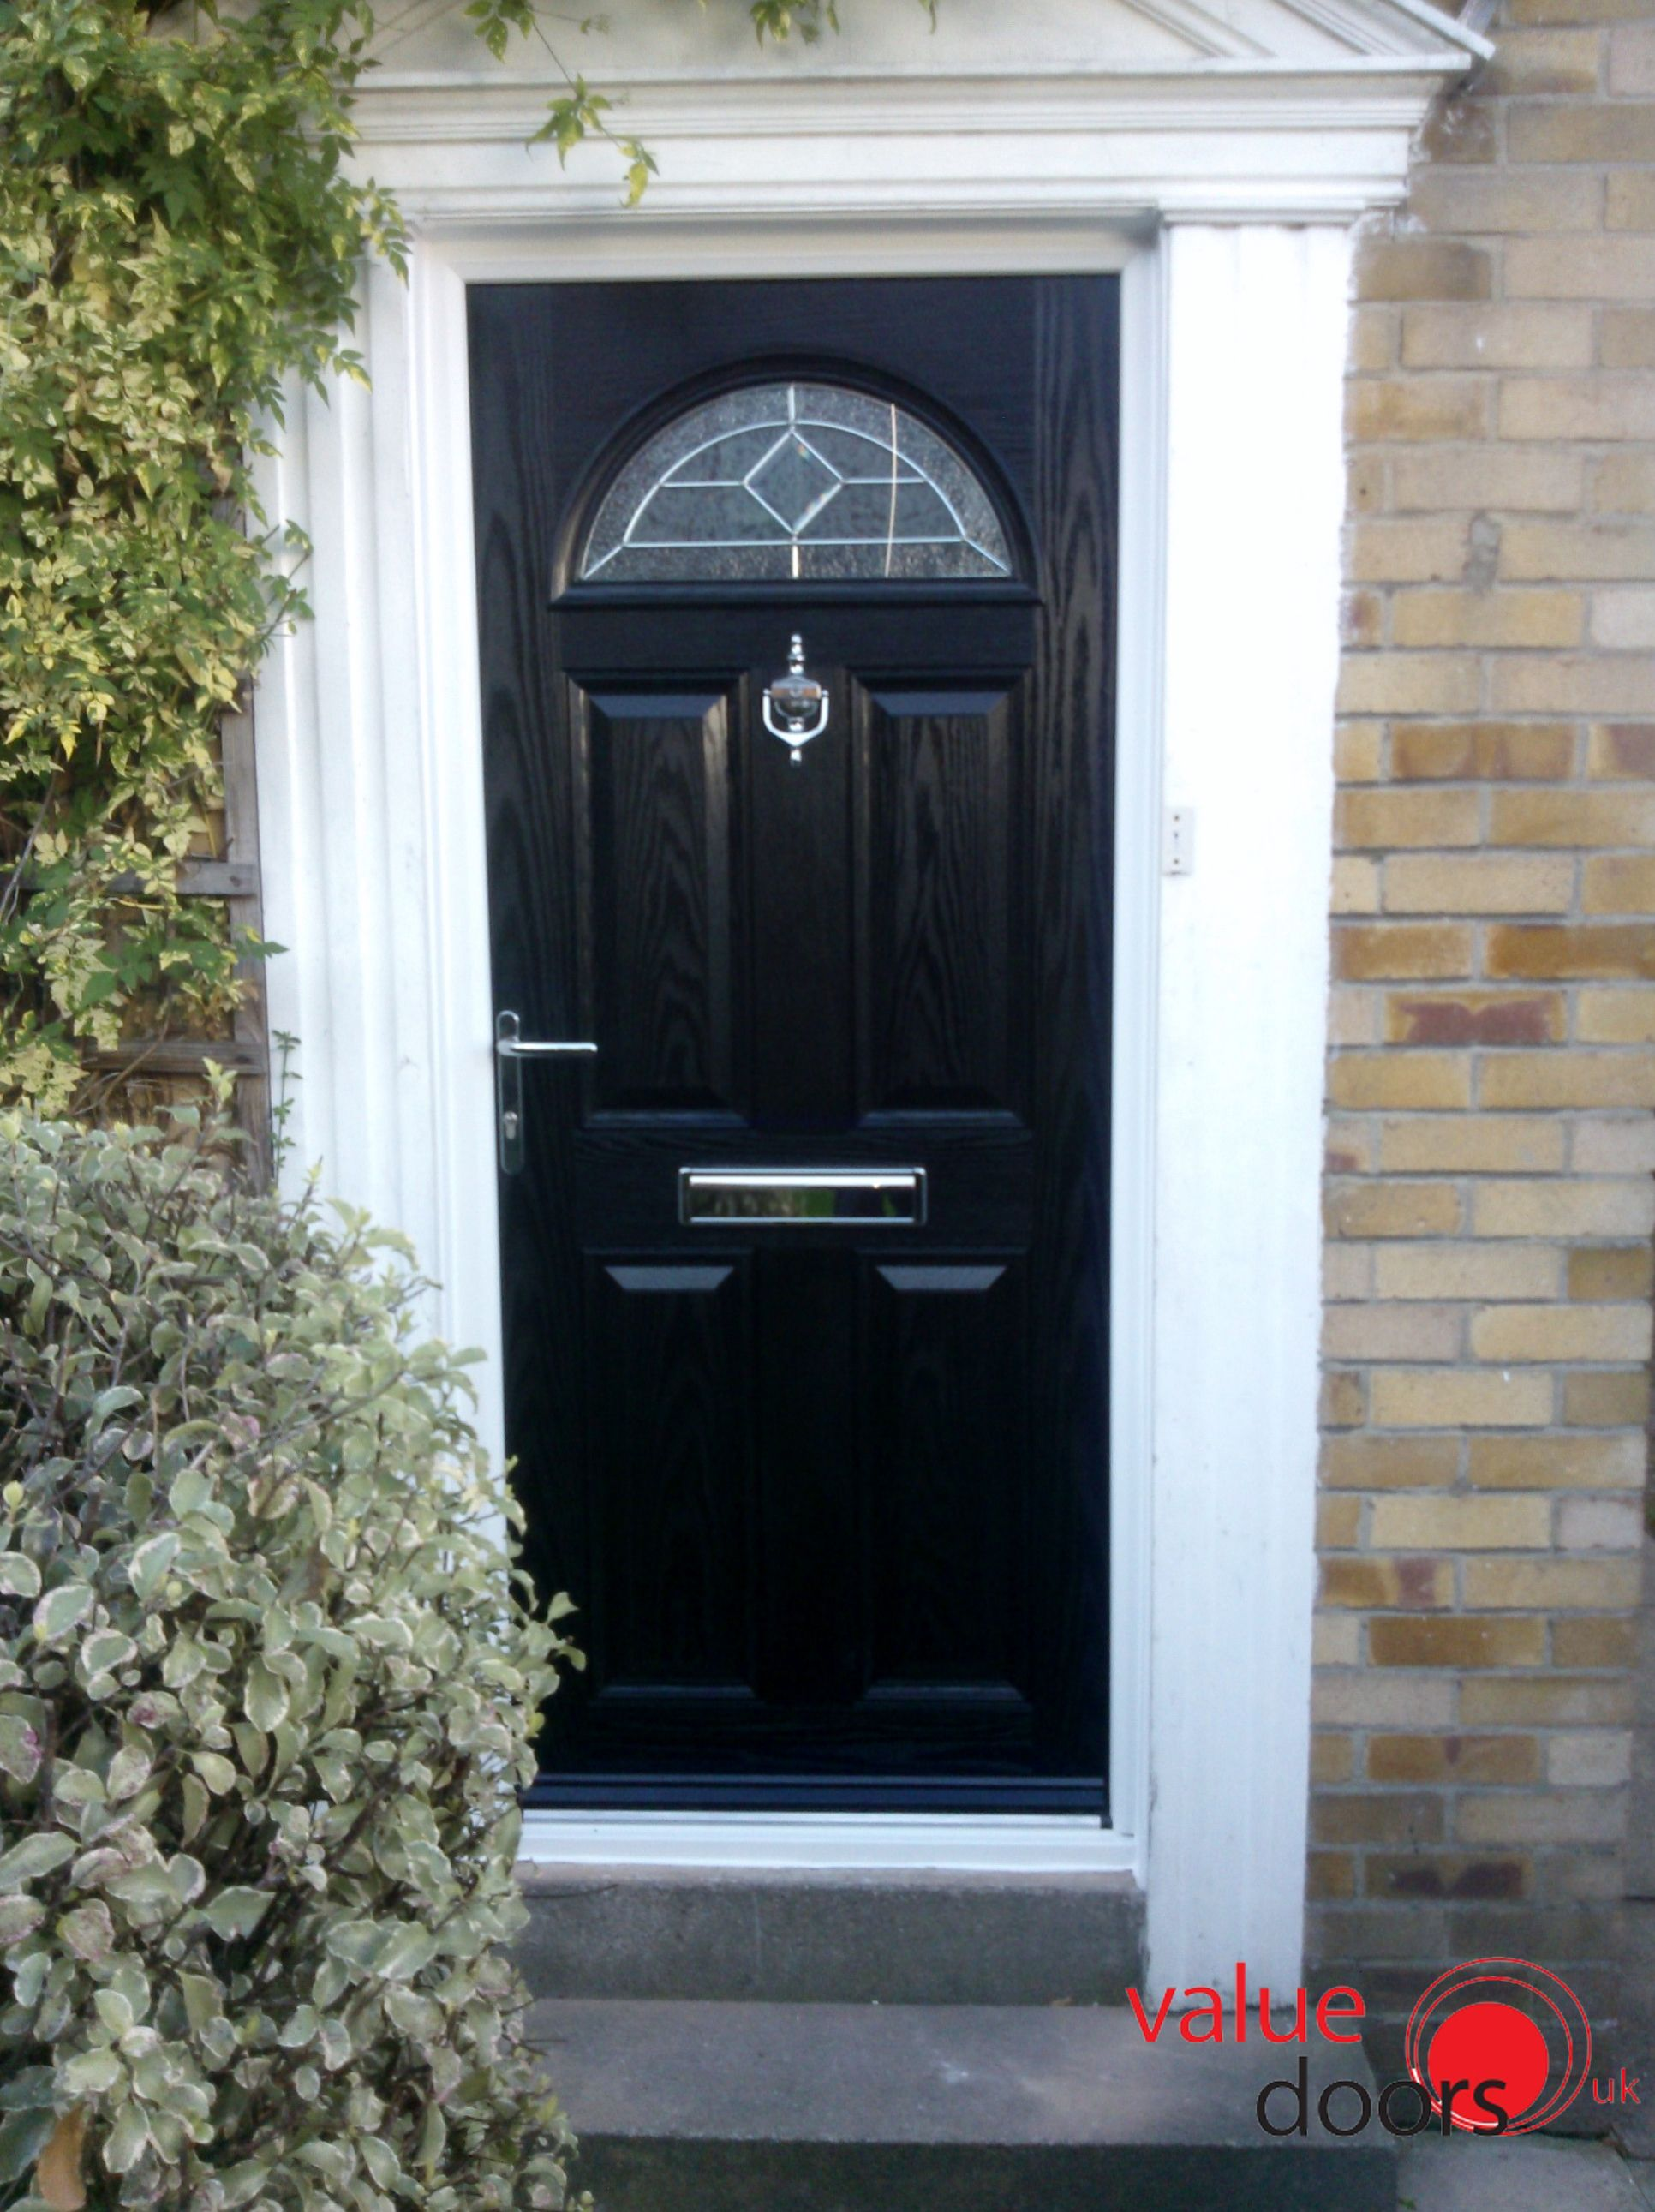 The Derby Composite Door in Black with Red Crystal Harmony! & The Derby Composite Door in Black with Red Crystal Harmony! | Black ...